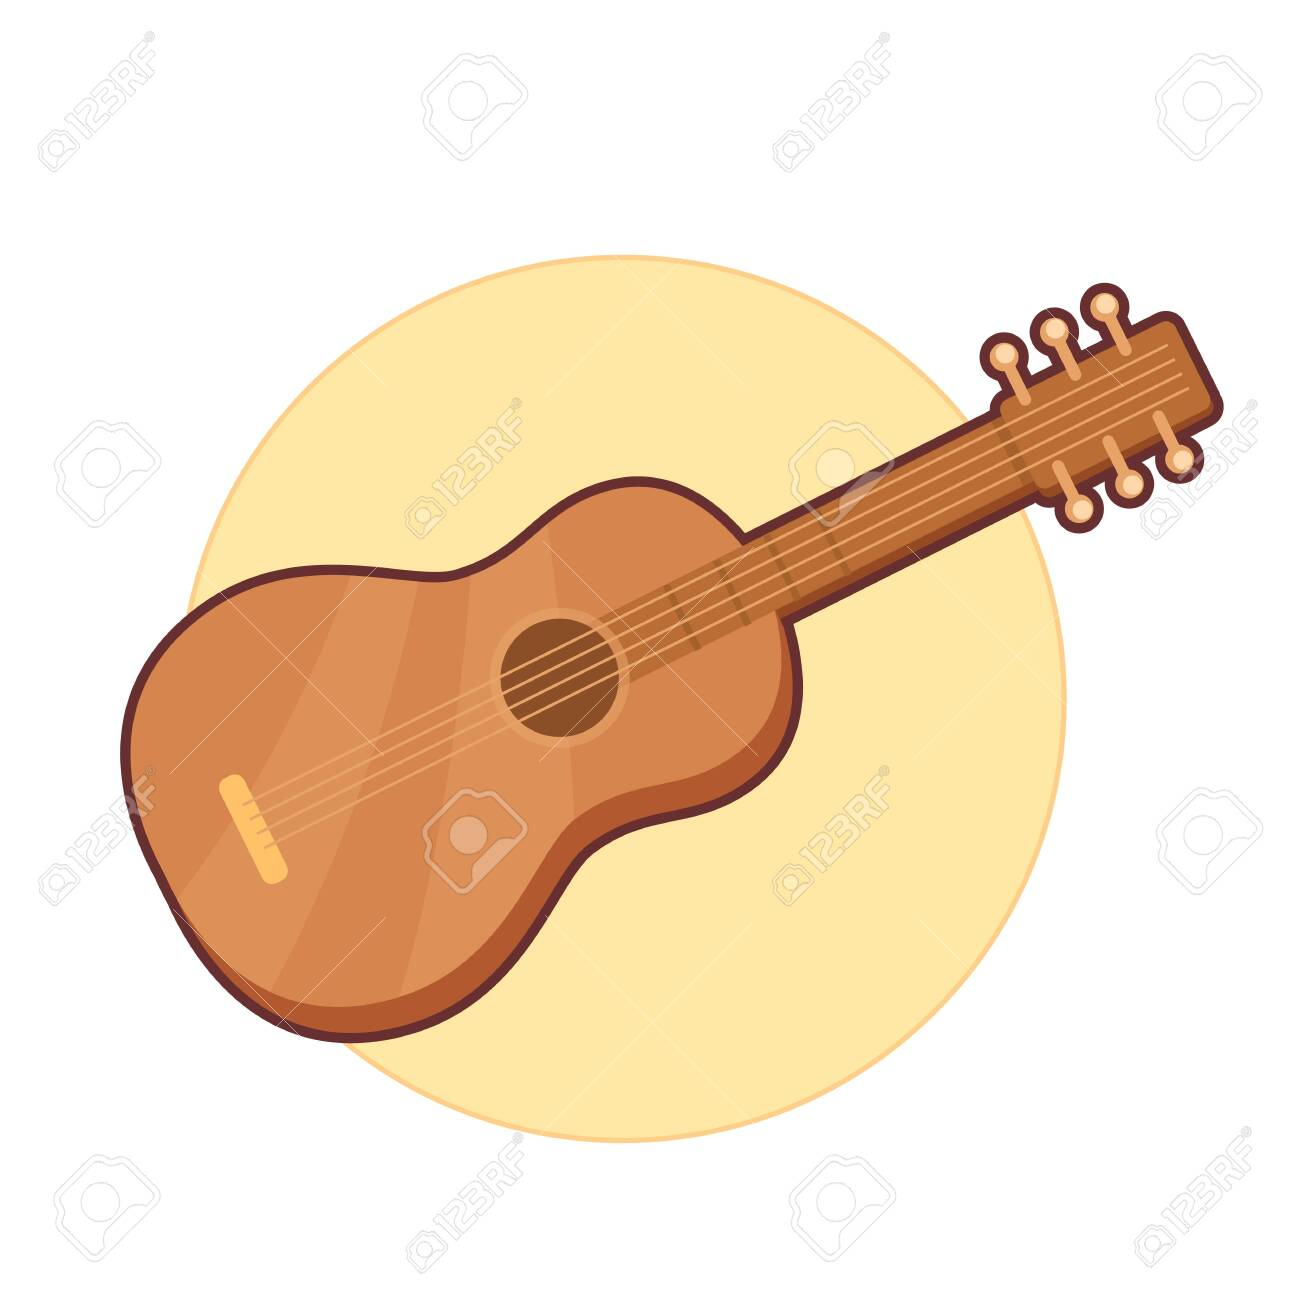 Vector illustration of wooden guitar on yellow background - 130347071